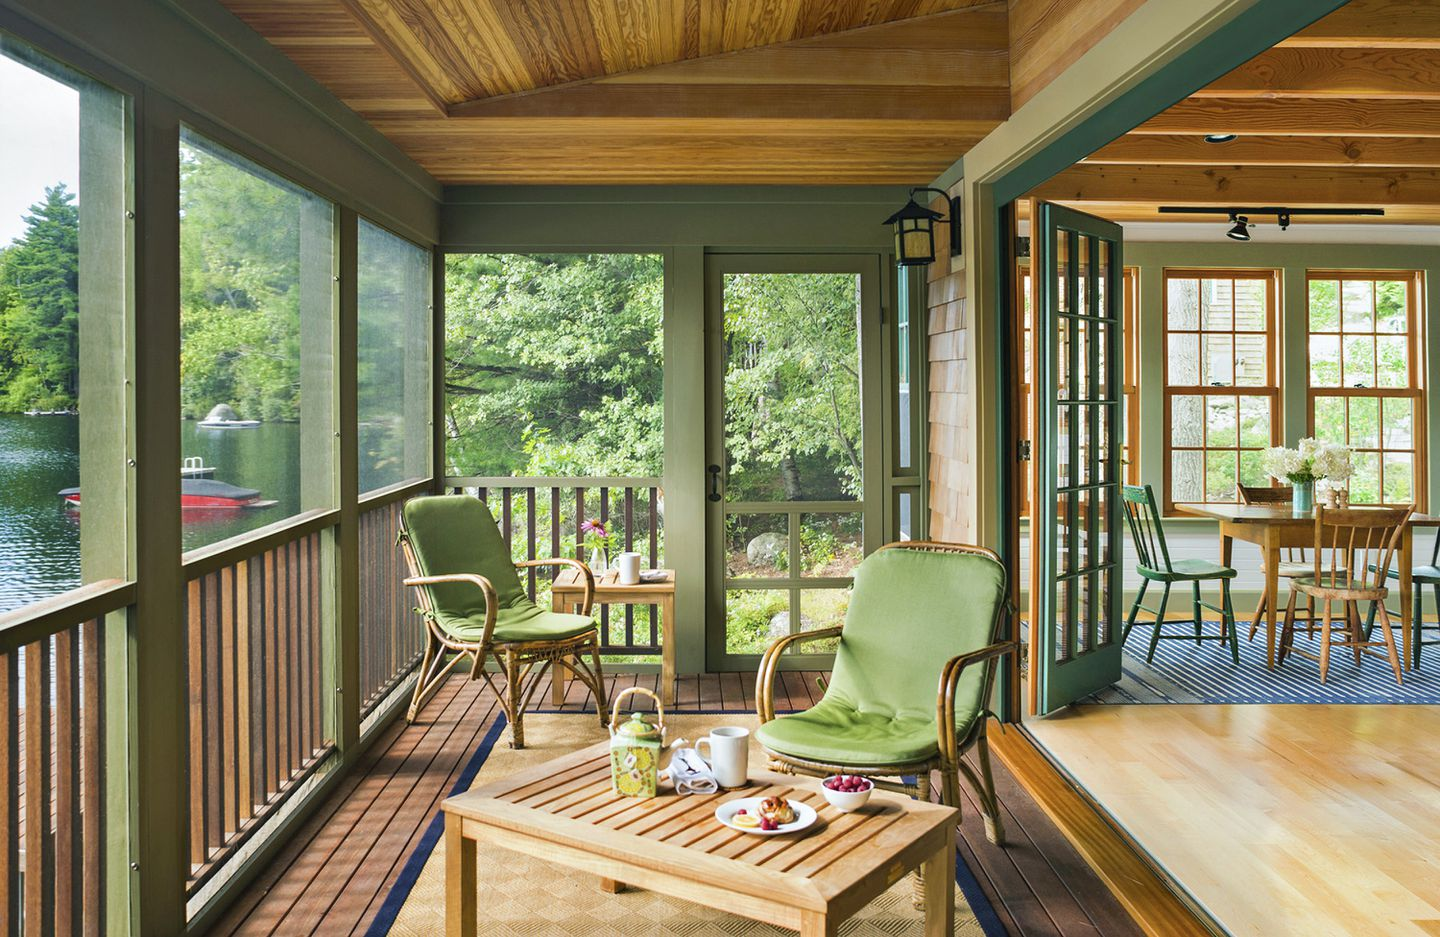 Benjamin Moore Georgian Green a rustic guesthouse on a new hampshire lake couldn't be more